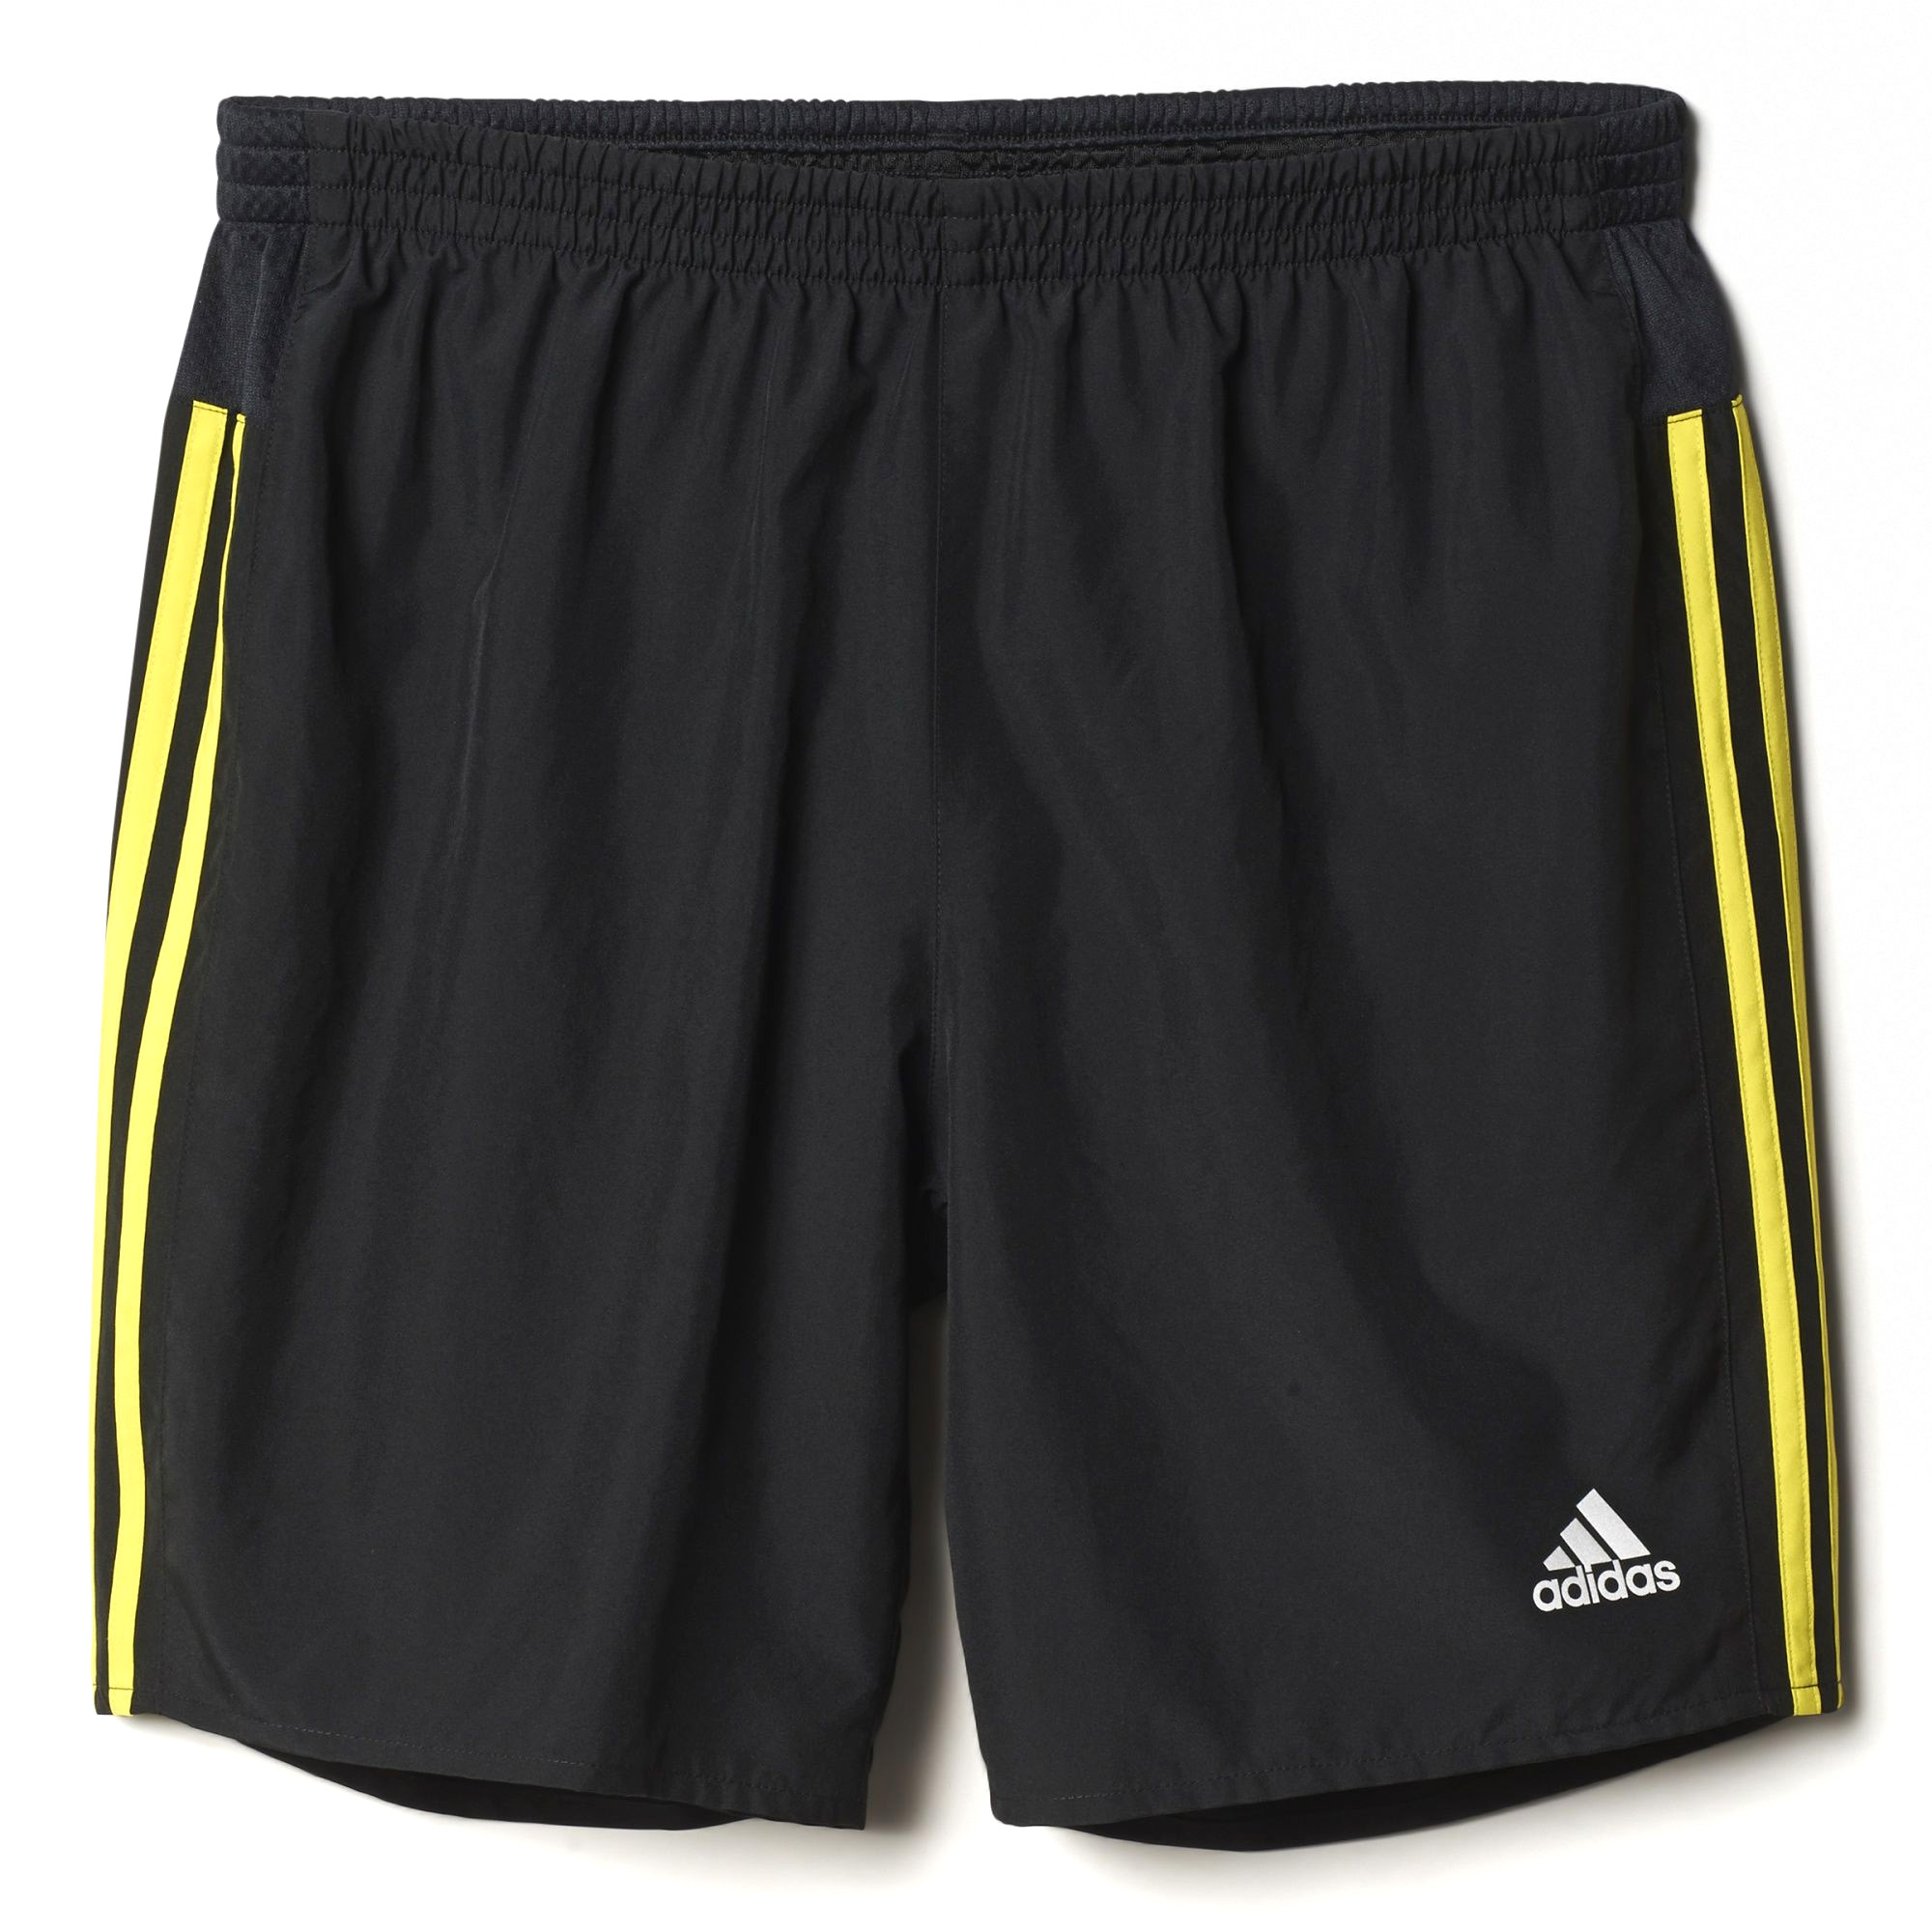 Shop Basketball Shorts Men's Yellow at Champs Sports. All shoes Launch at 10am ET (9am CT) For store specific launch locations and procedures, visit our LAUNCH LOCATOR.